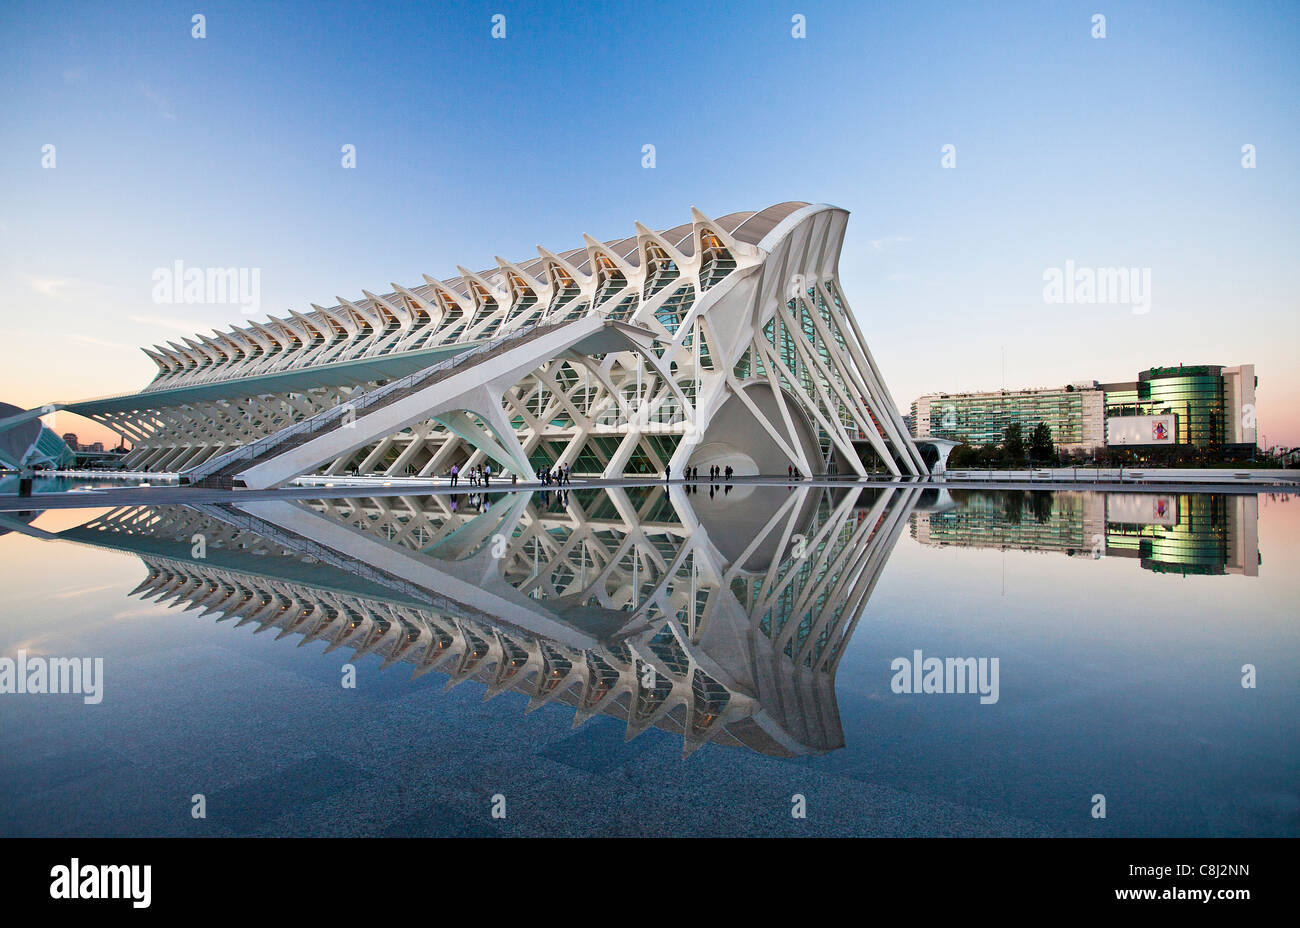 Spain, Europe, Valencia, City of Arts and Science, Calatrava, architecture, modern, water - Stock Image